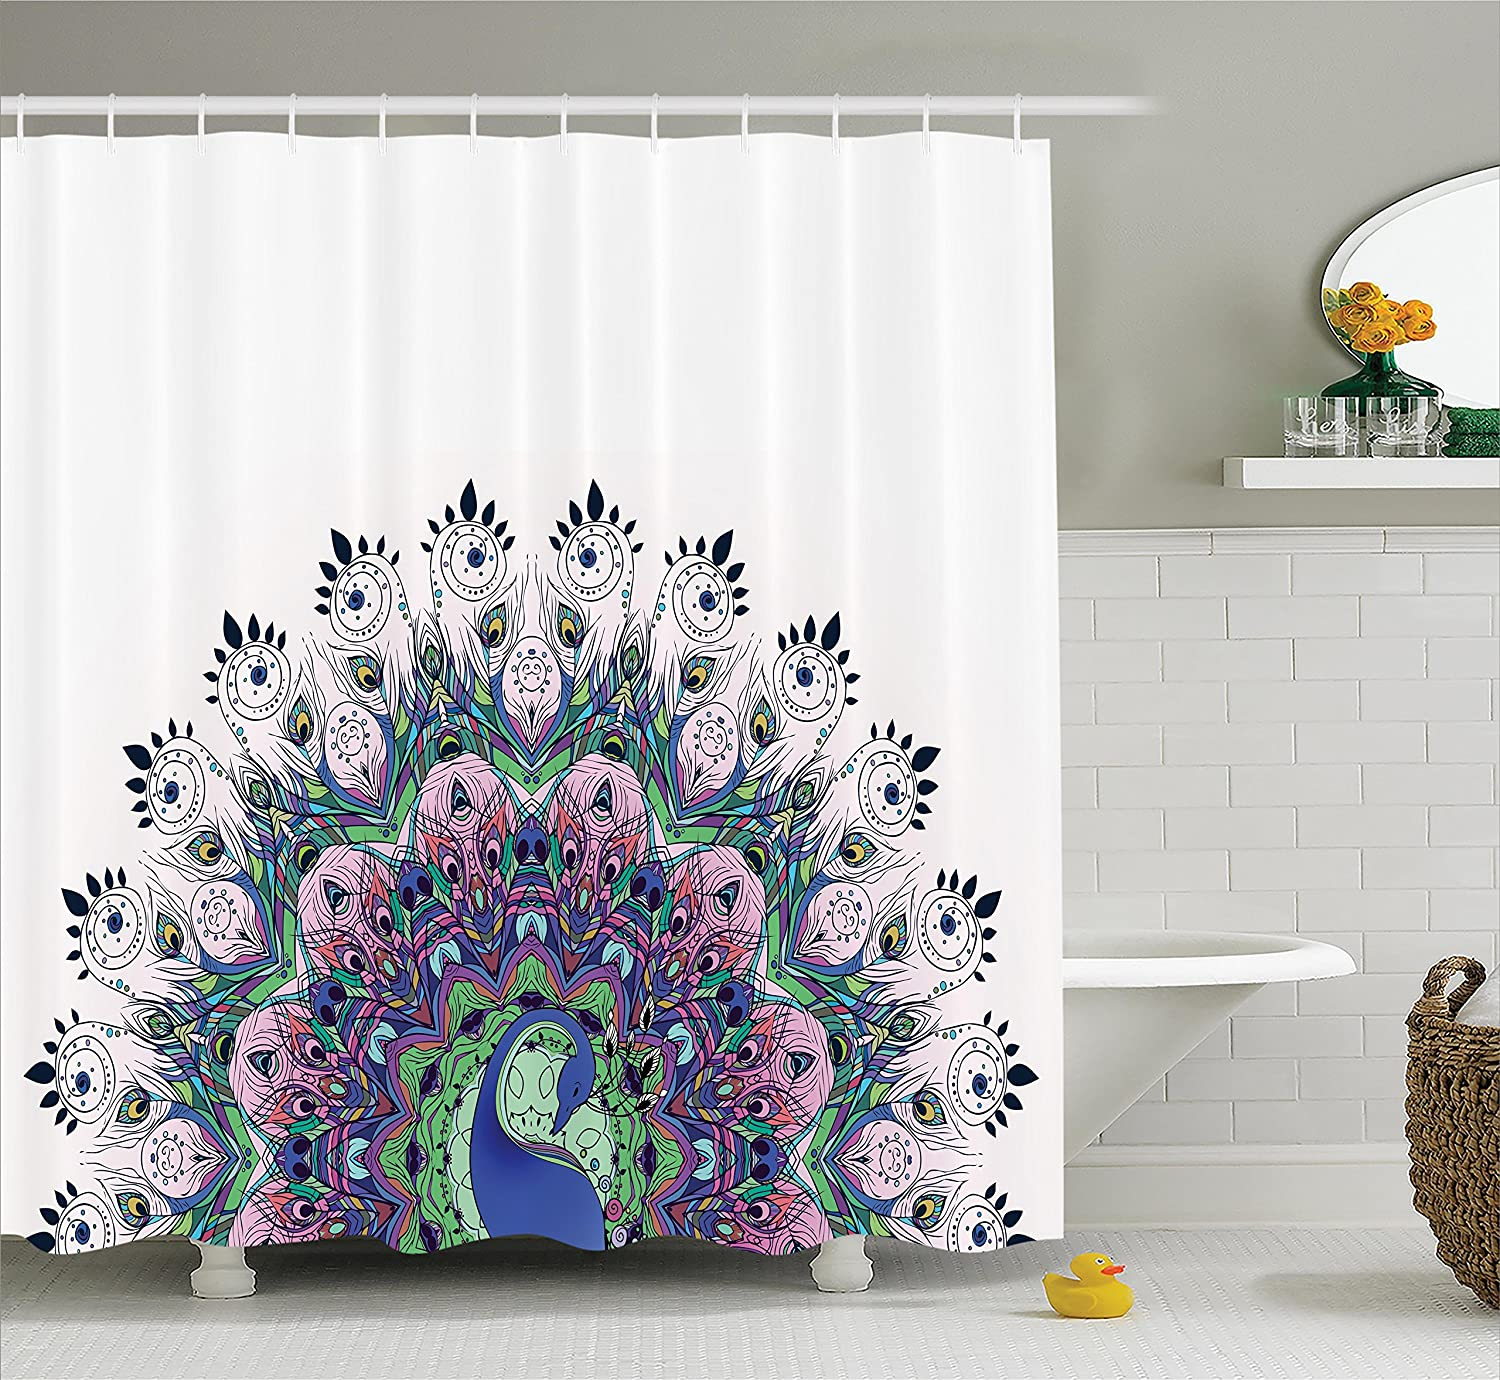 Polyester Fabric Bathroom Shower Curtain Peacock Bird In Pink Green Navy Purple